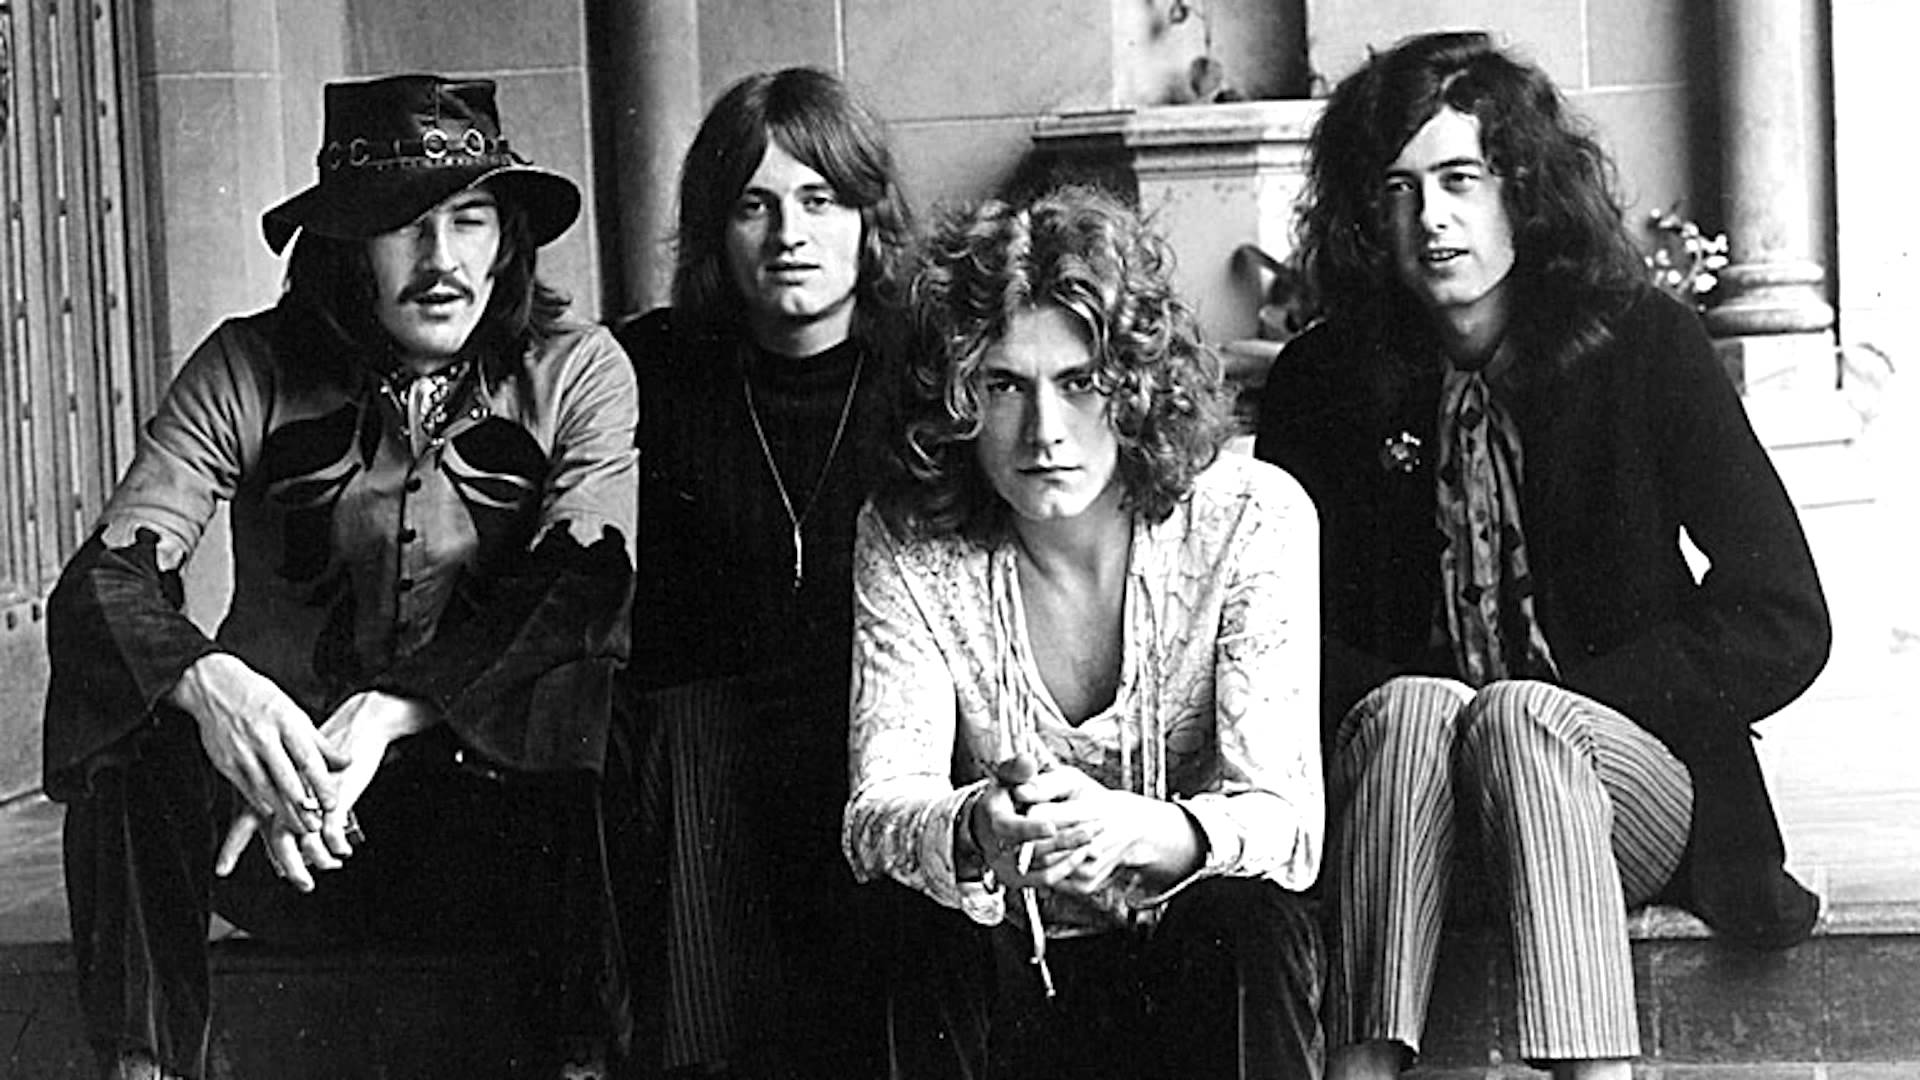 Led Zeppelin Wallpaper Reddit ✓ Fitrini's Wallpaper